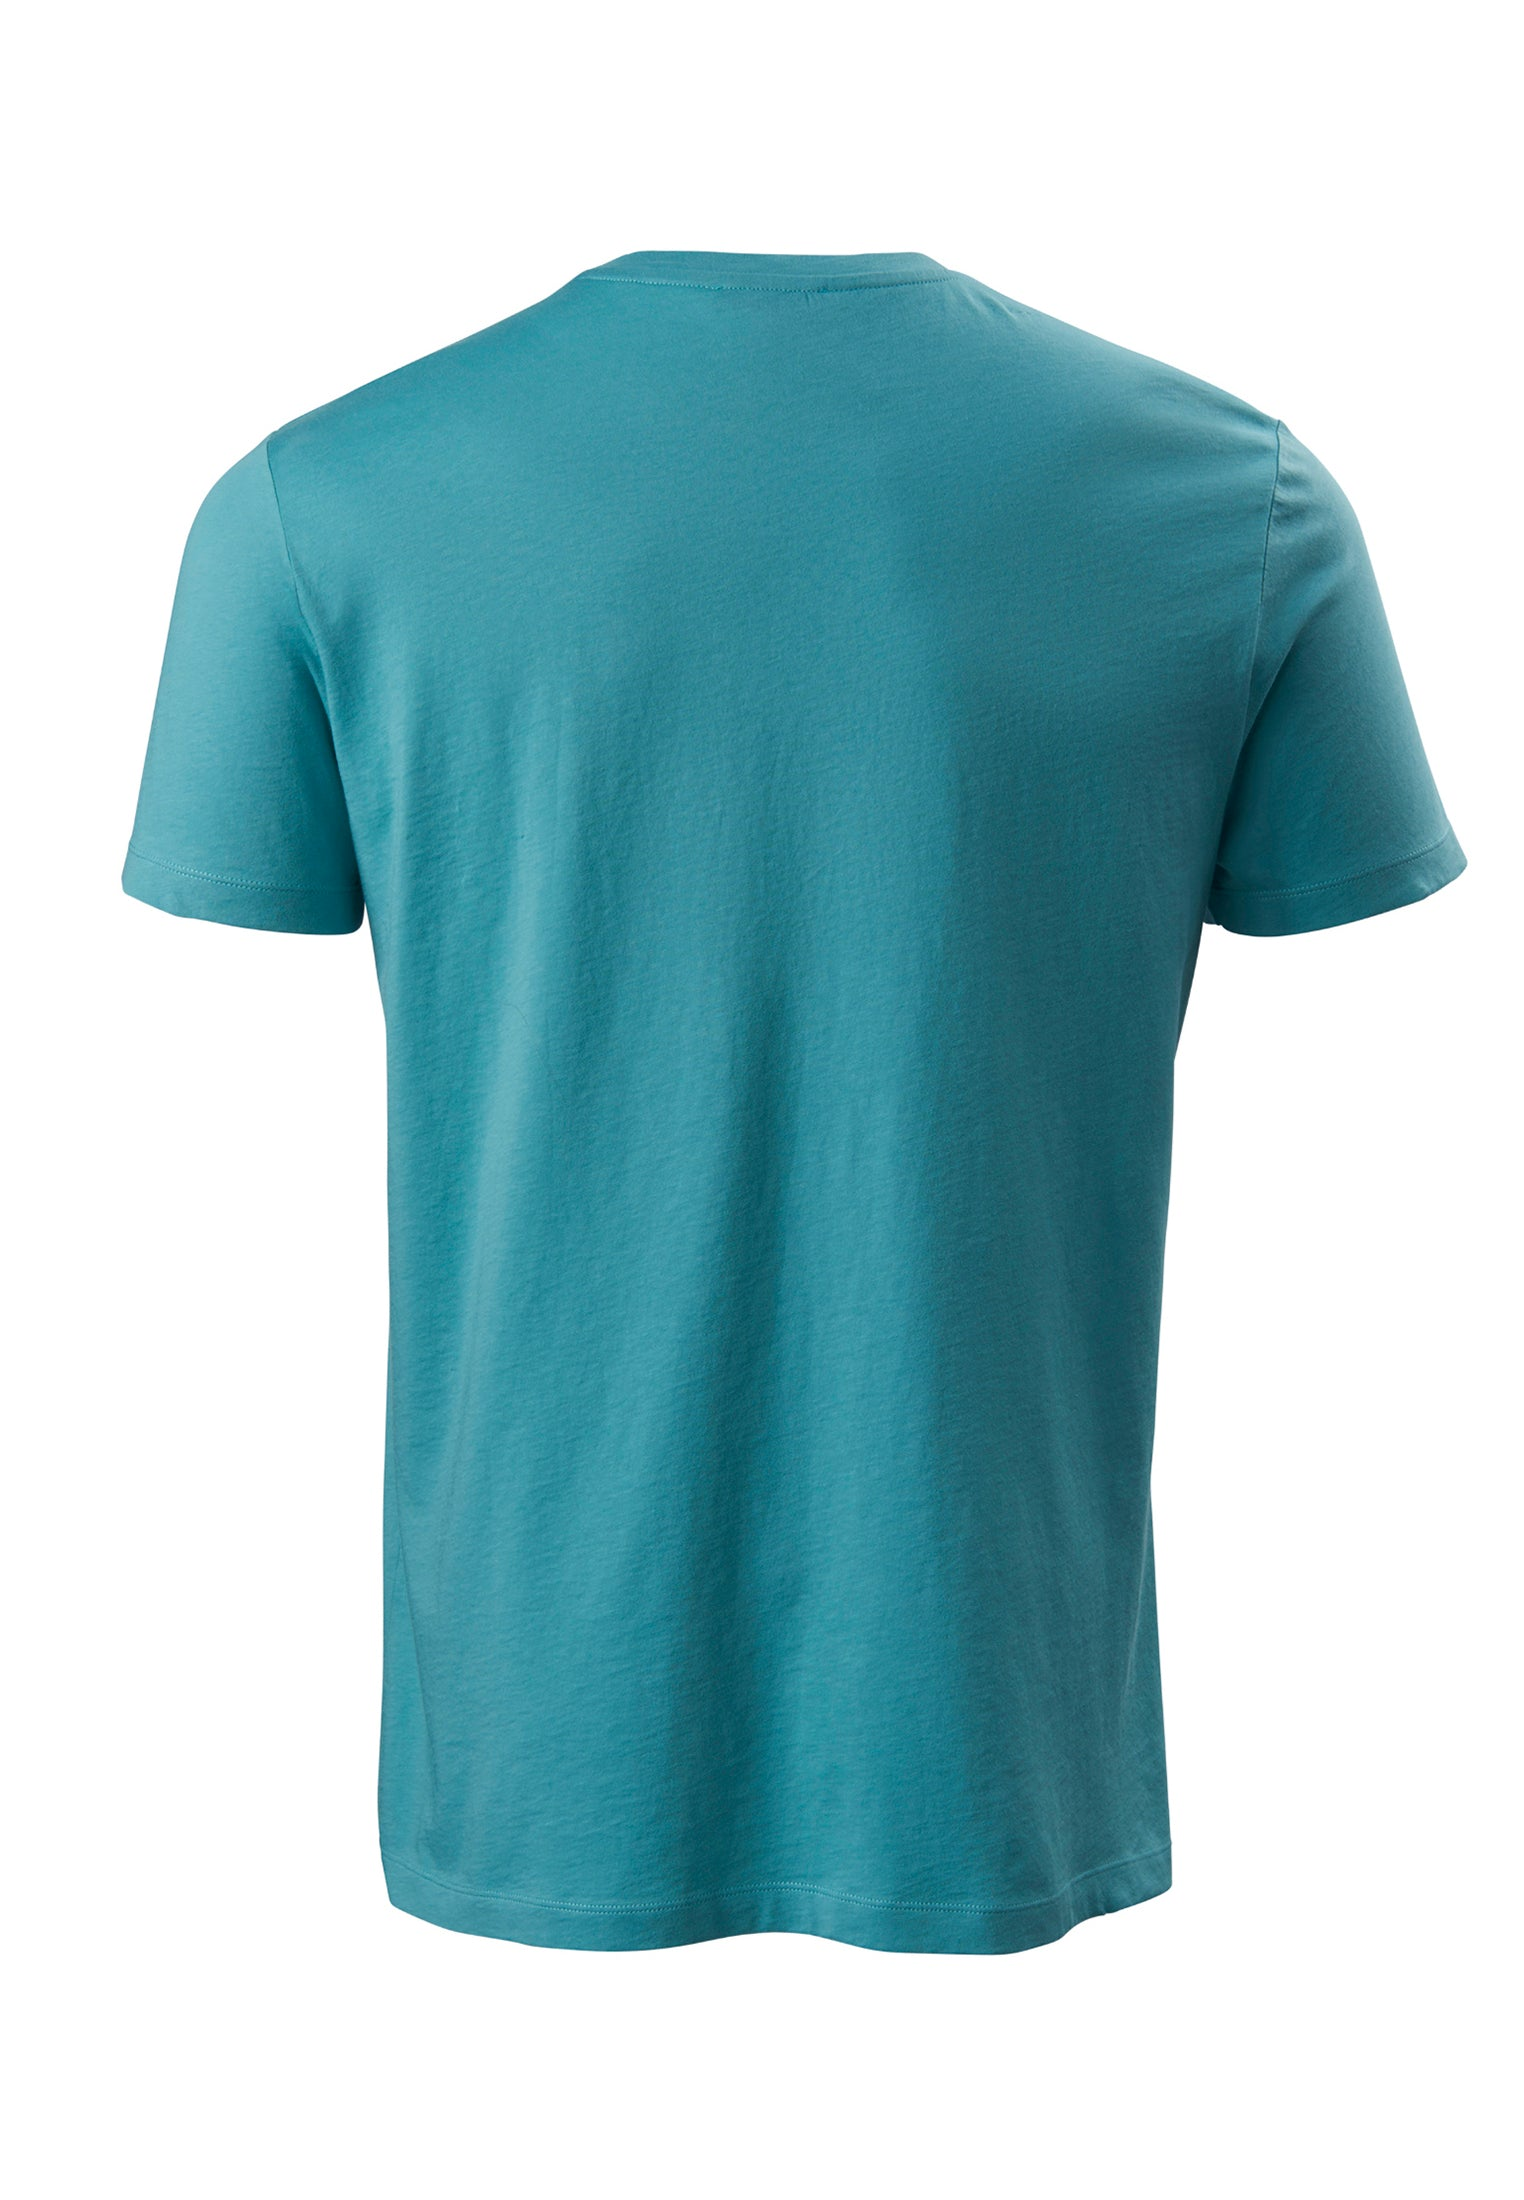 The Round Neck T-Shirt Turquoise